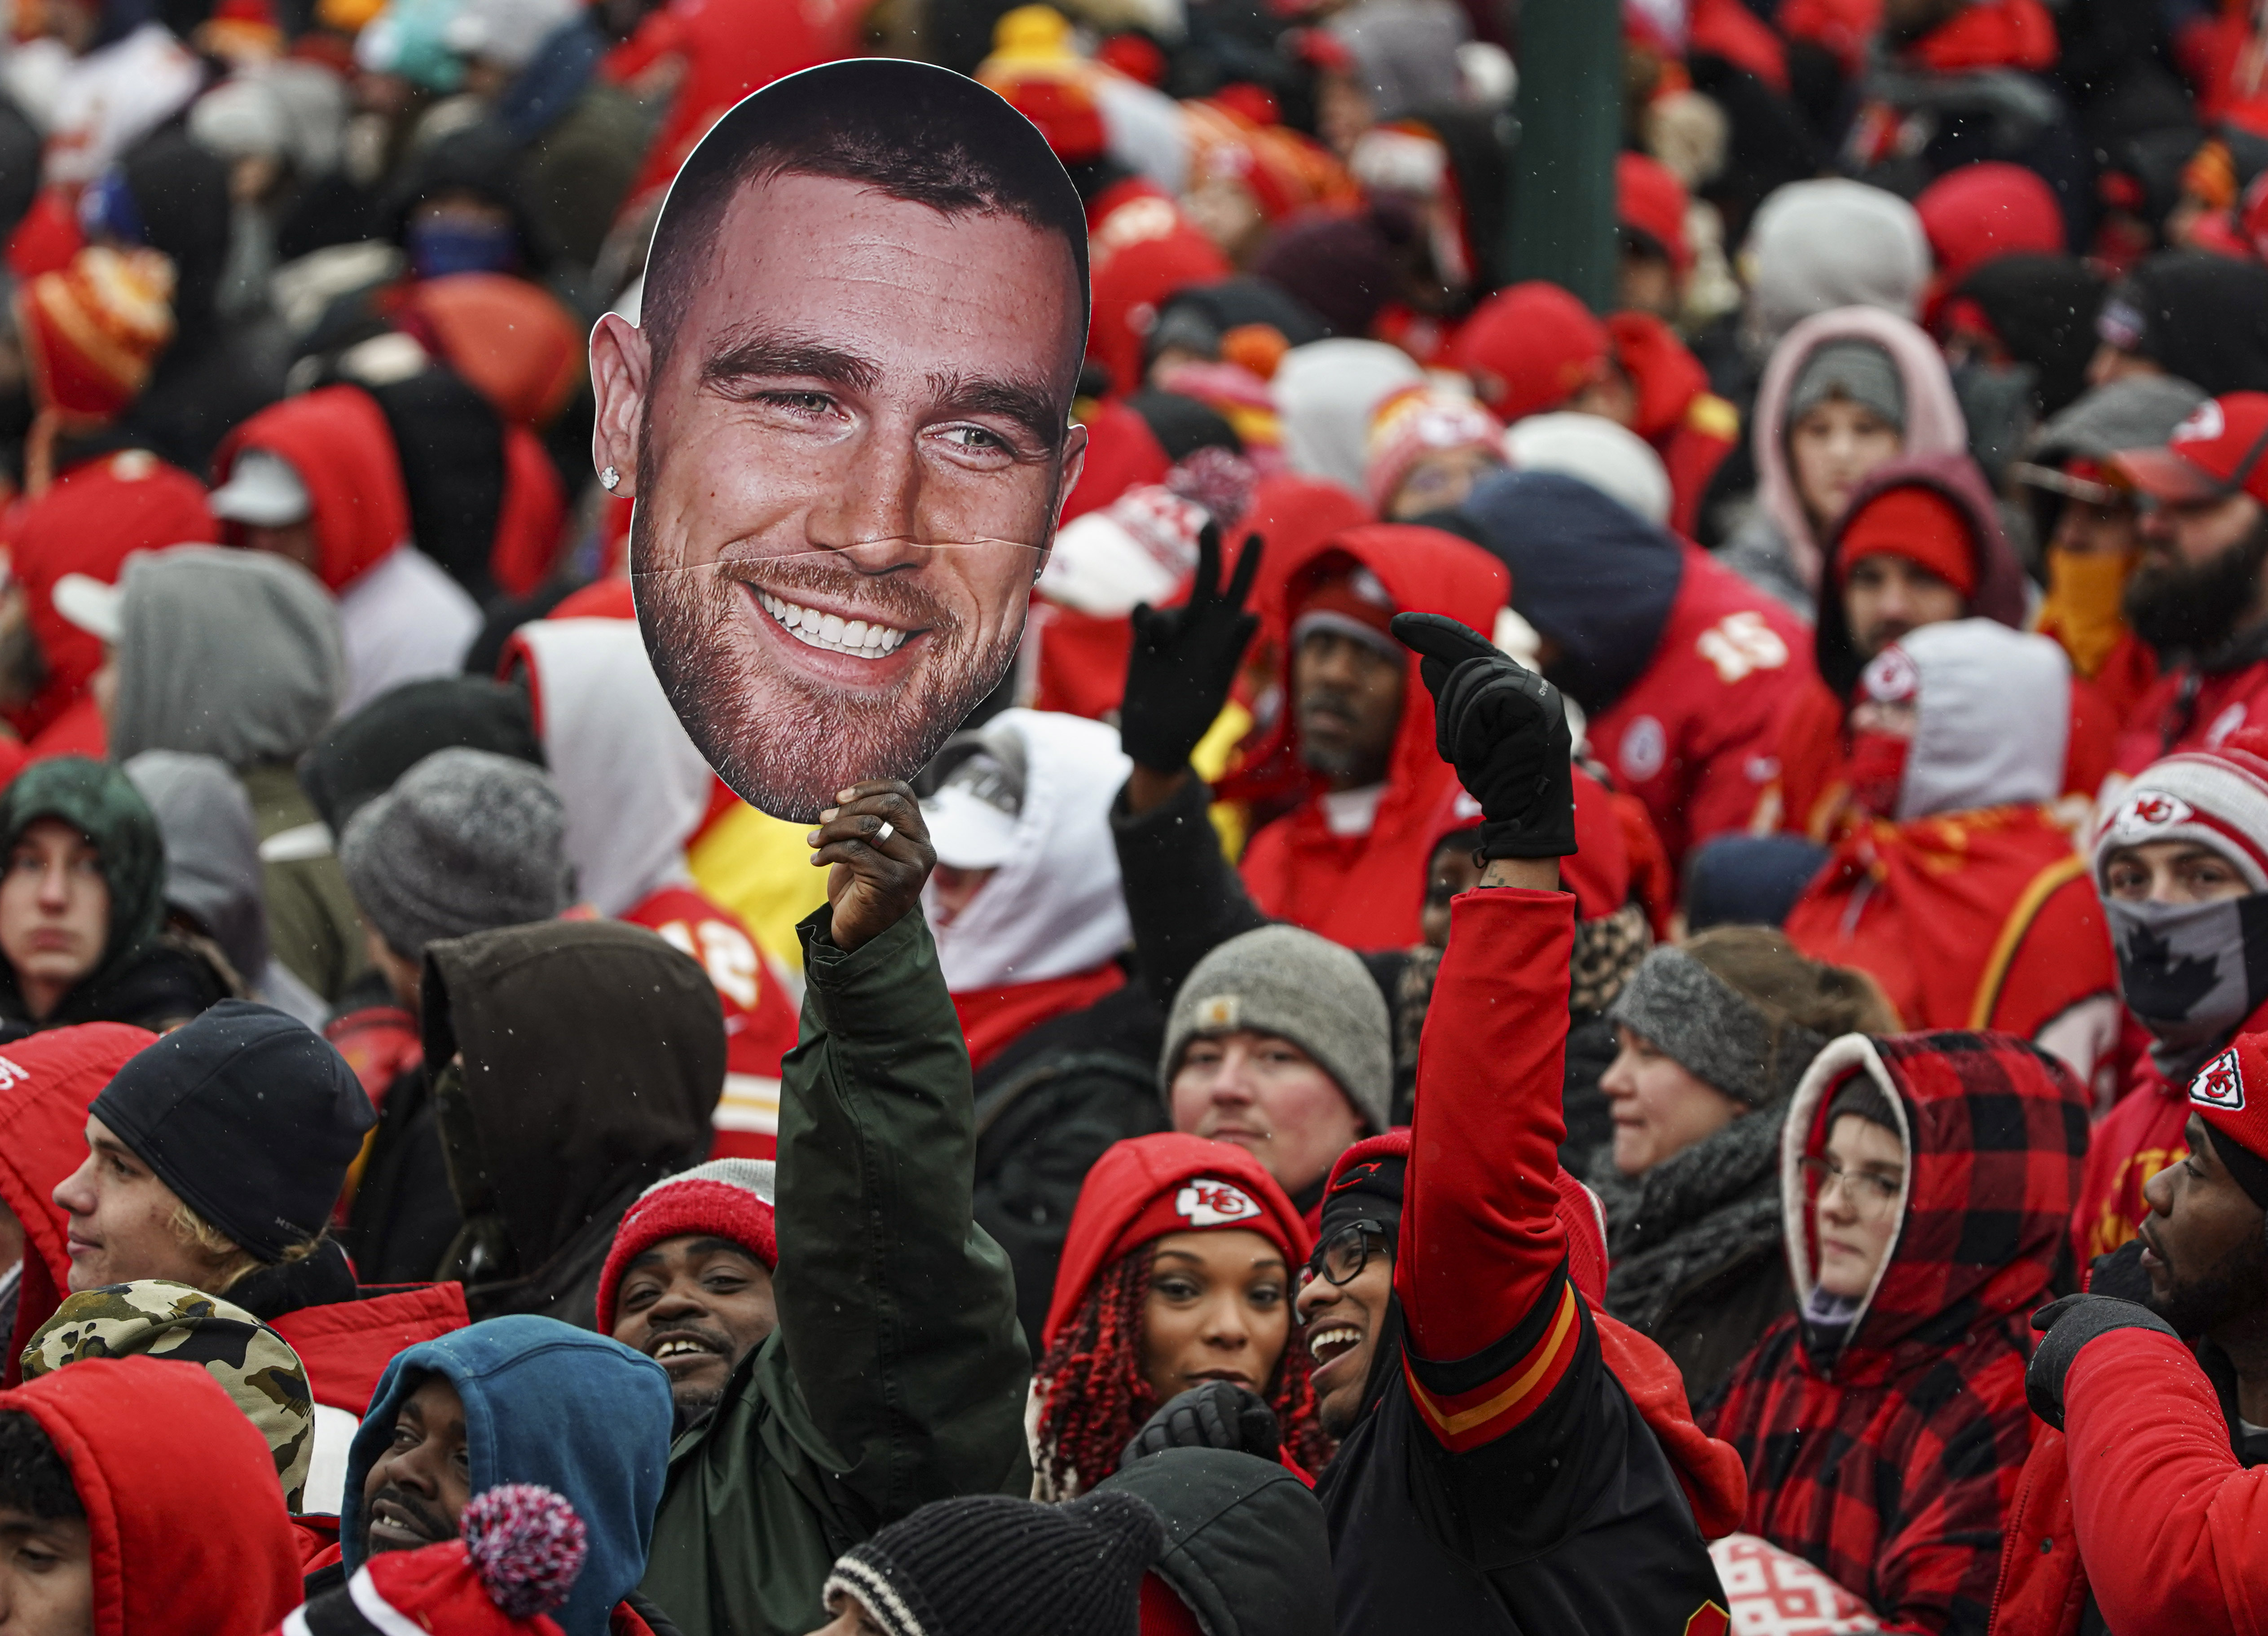 Travis Kelce: Chiefs will be ready for every NFL team's best shot next season, having won Super Bowl